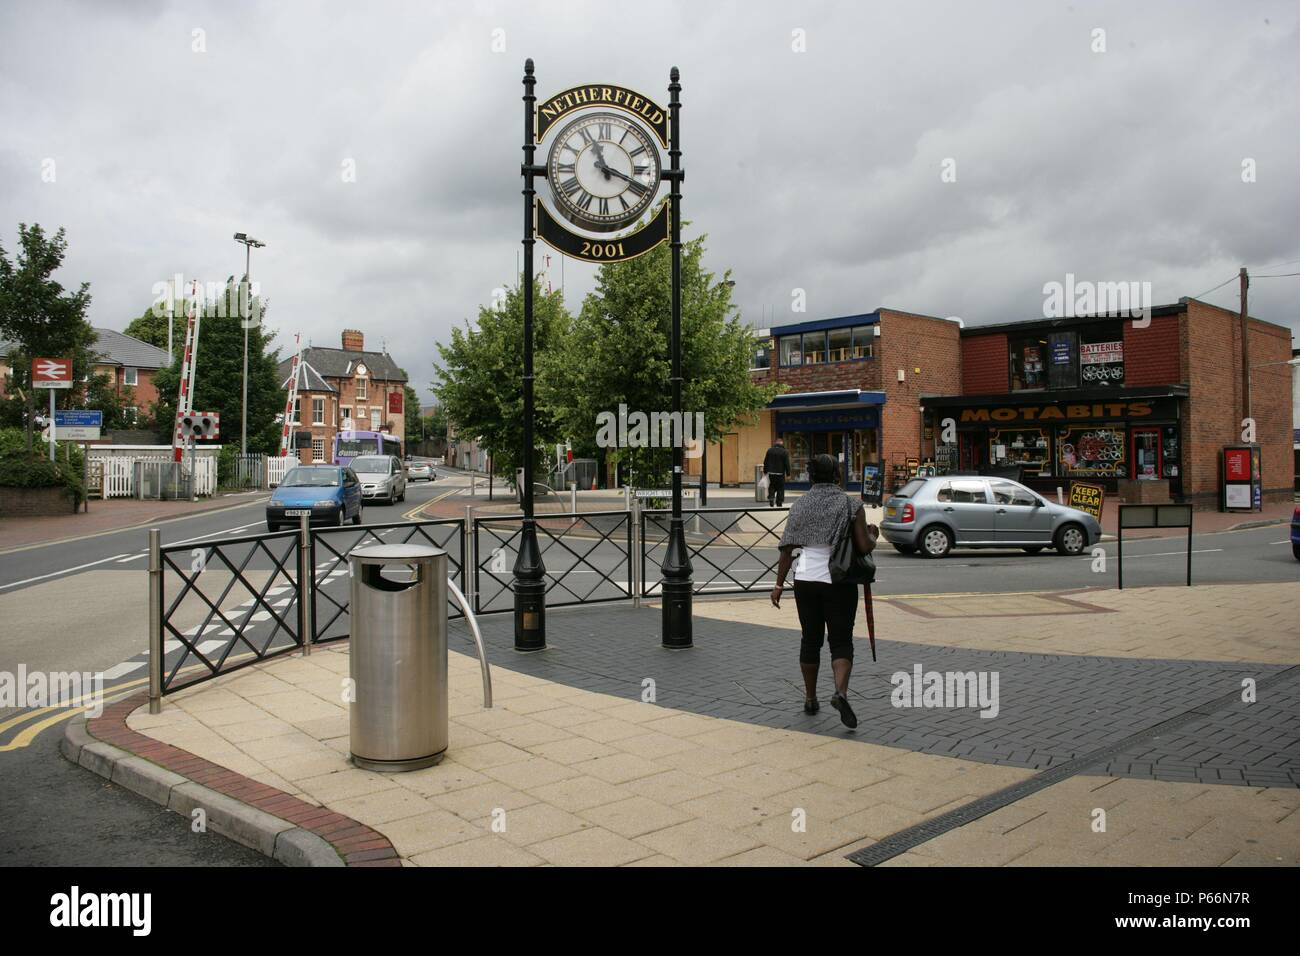 Environs of the station at Carlton, Nottinghamshire. 2007 - Stock Image